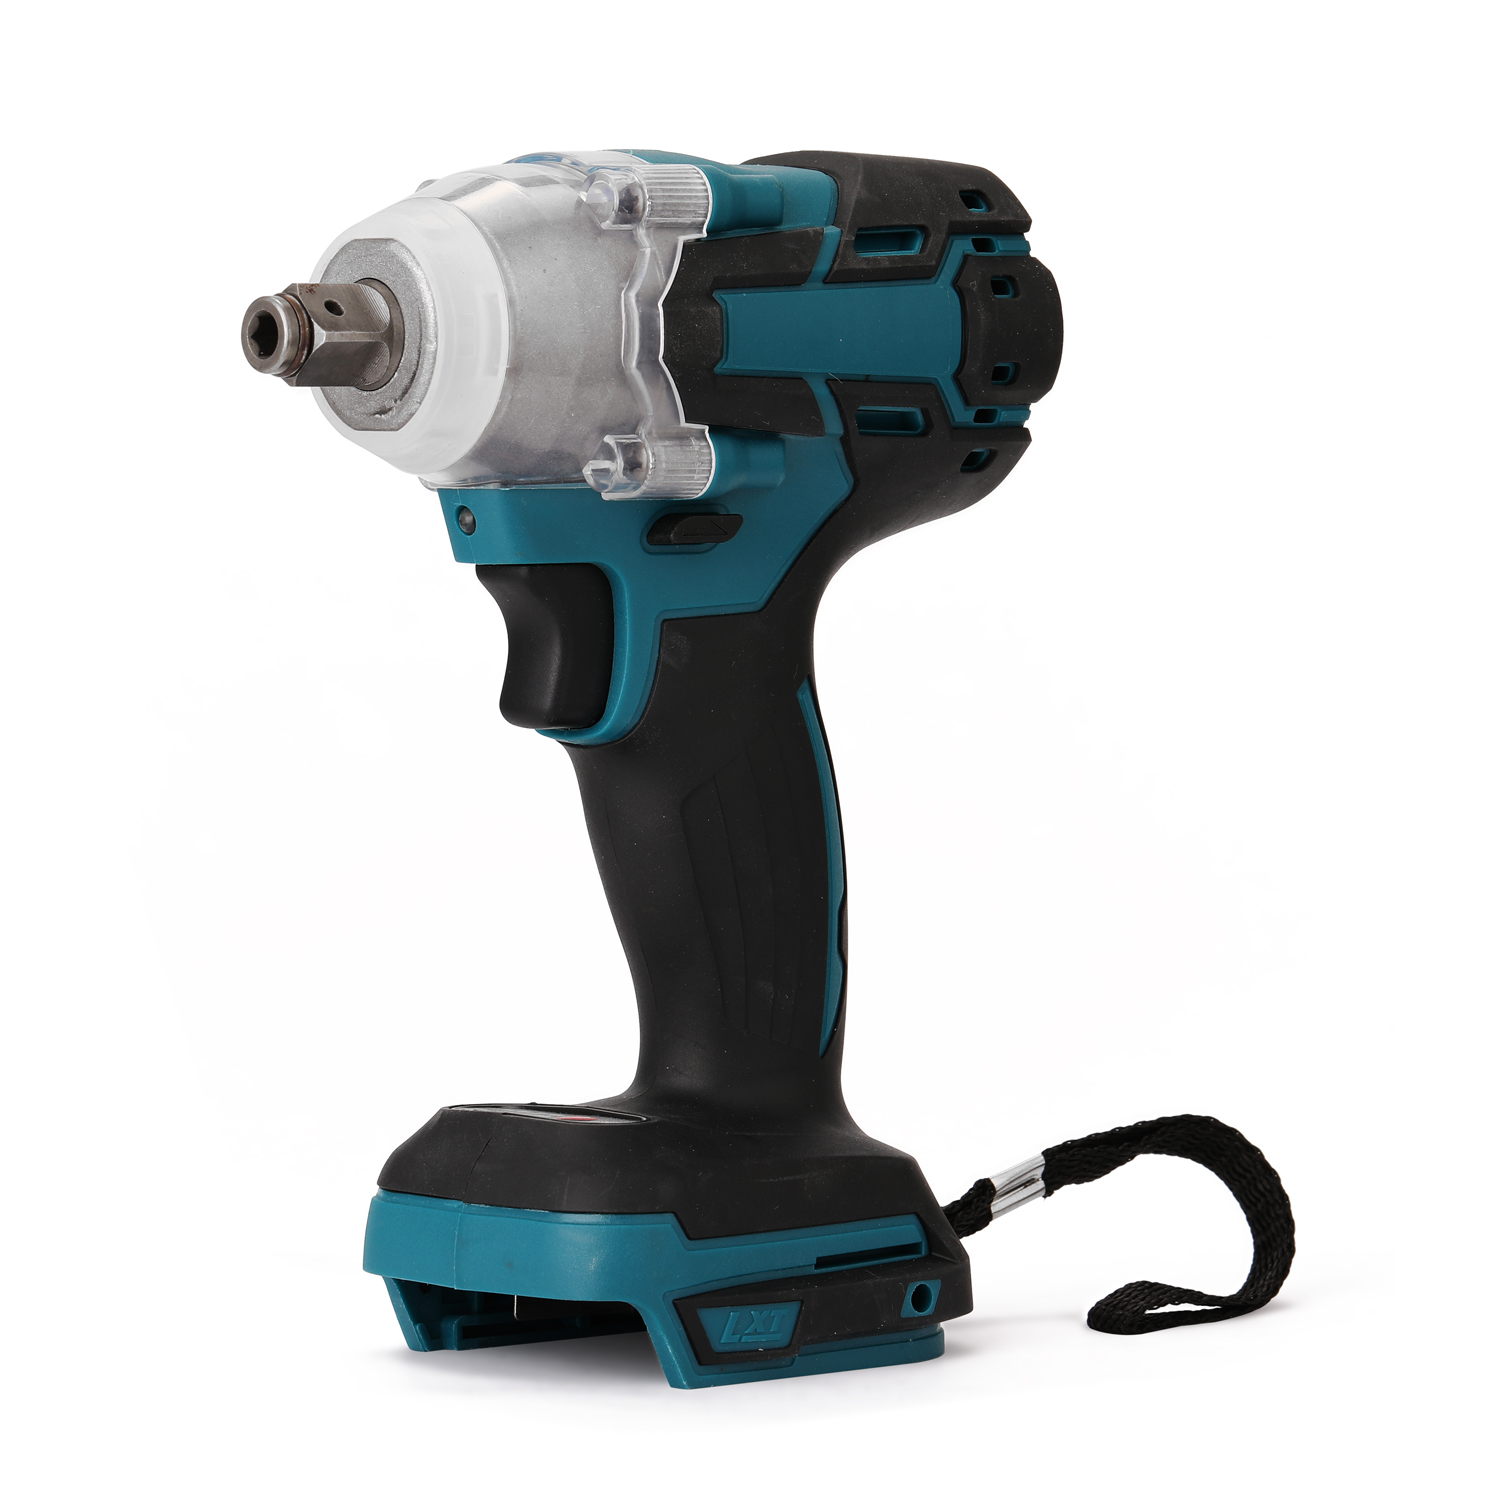 Electric Rechargeable Cordless Brushless Impact Screwdriver Wireless Electric Hand Screwdriver Home DIY Electric Power Tools